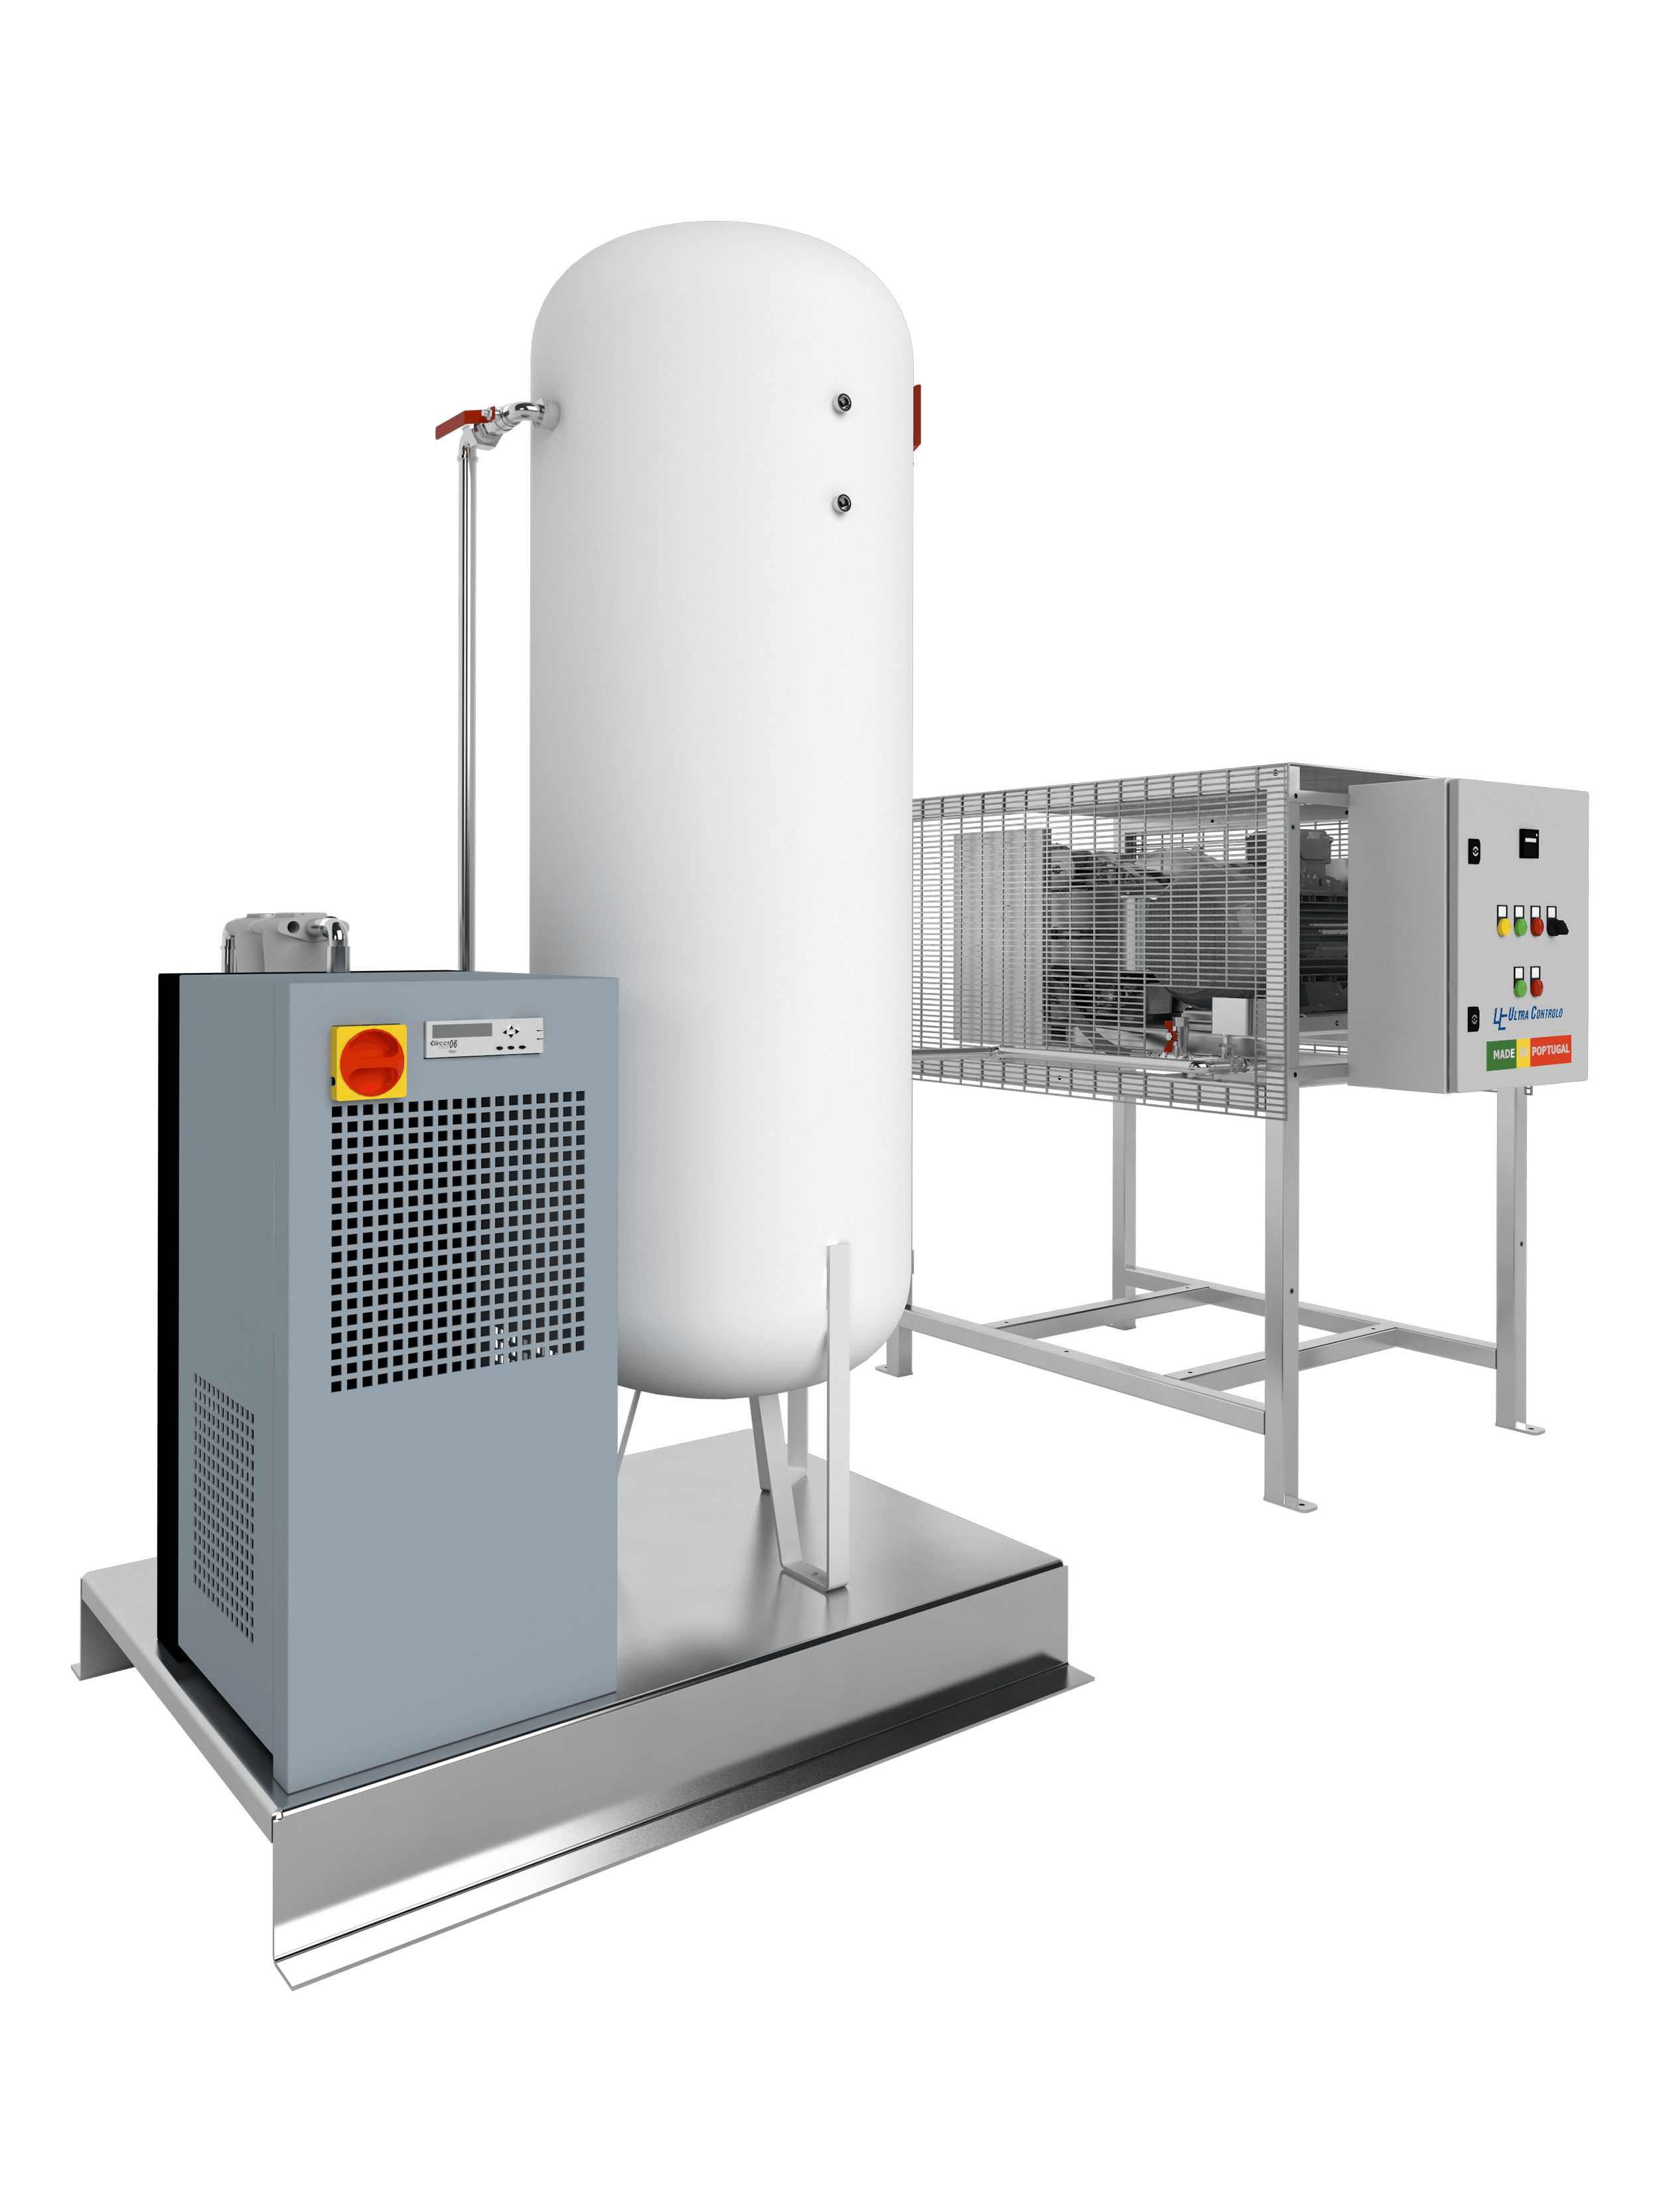 The ACIH Hospital Industrial Compressed Air systems were developed to meet the needs imposed by hospital standards that prohibit the use of medical air for instrument air purposes, requiring an independent compressed air supply.